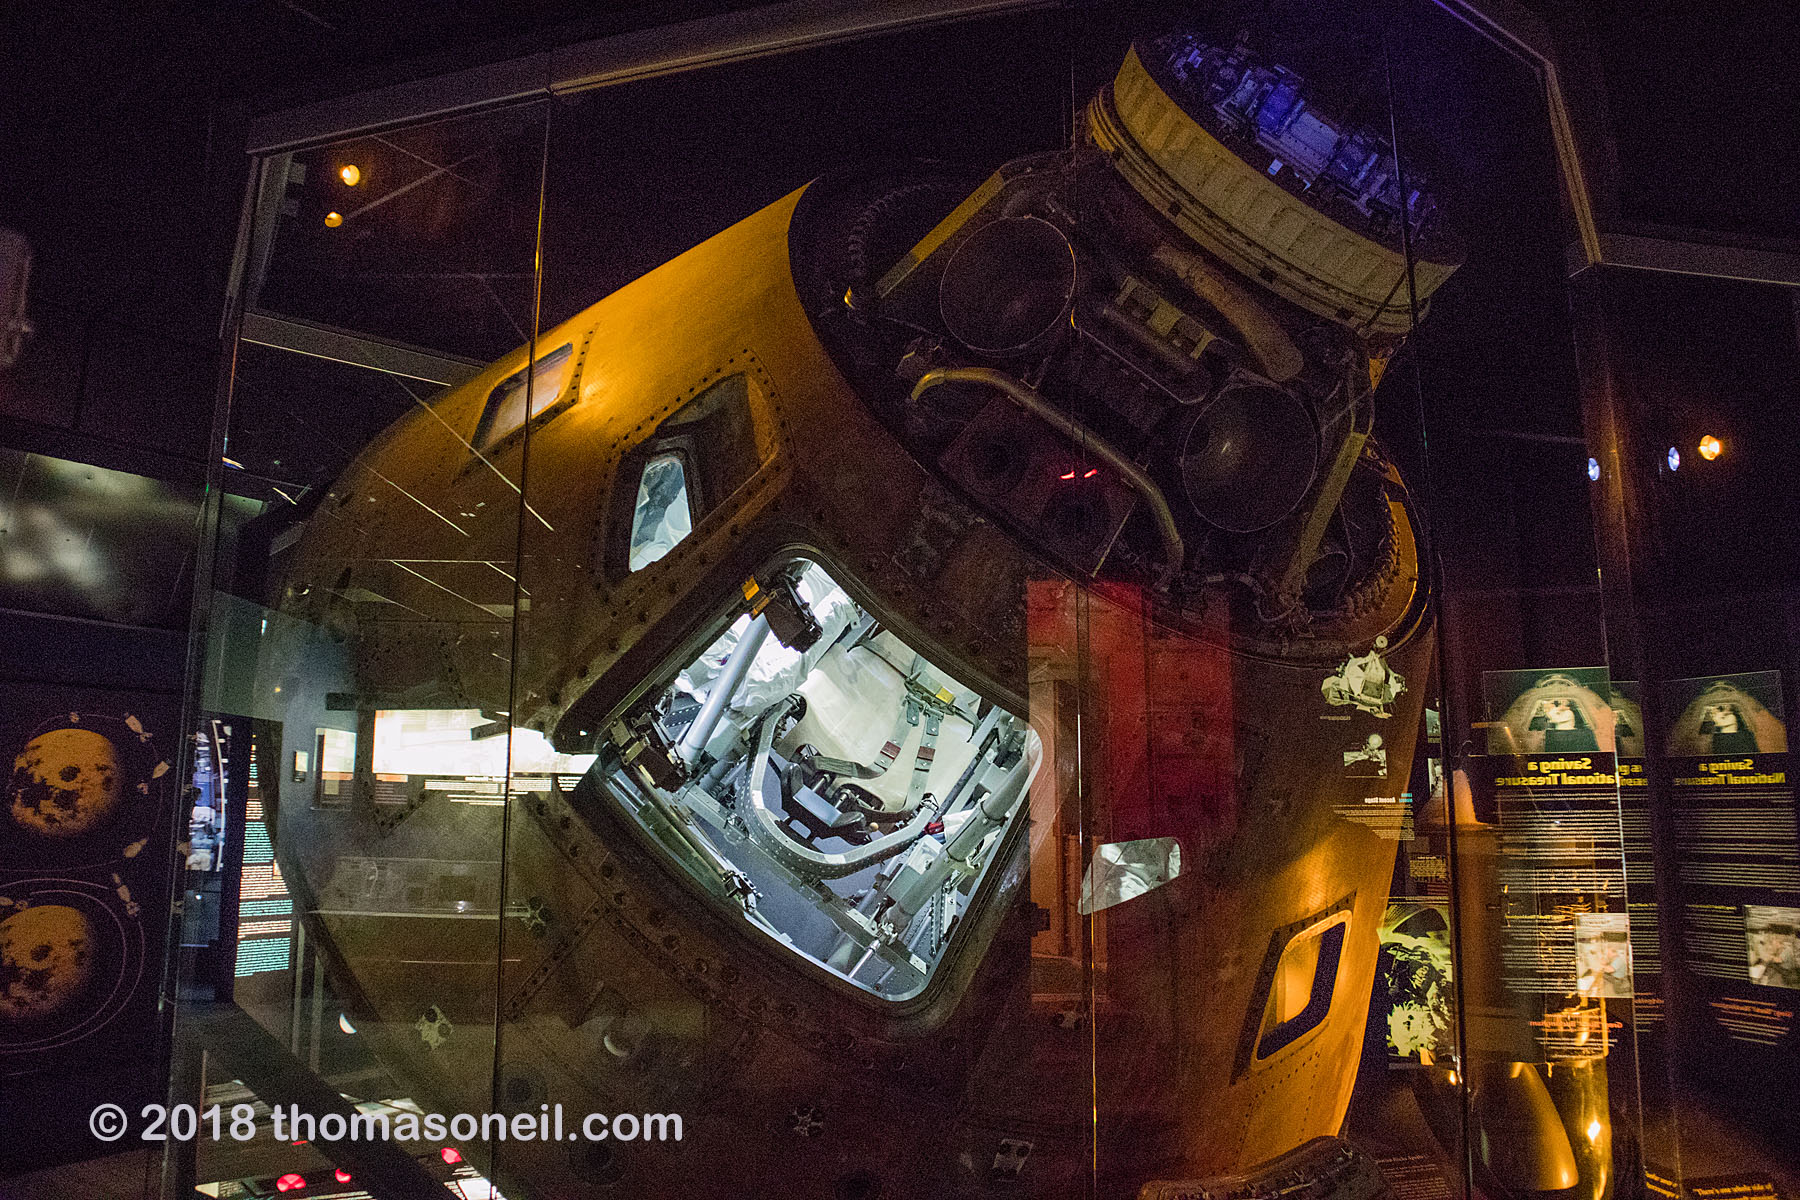 The Apollo 13 capsule in 2018 at the Kansas Cosmosphere.  Click for next photo.